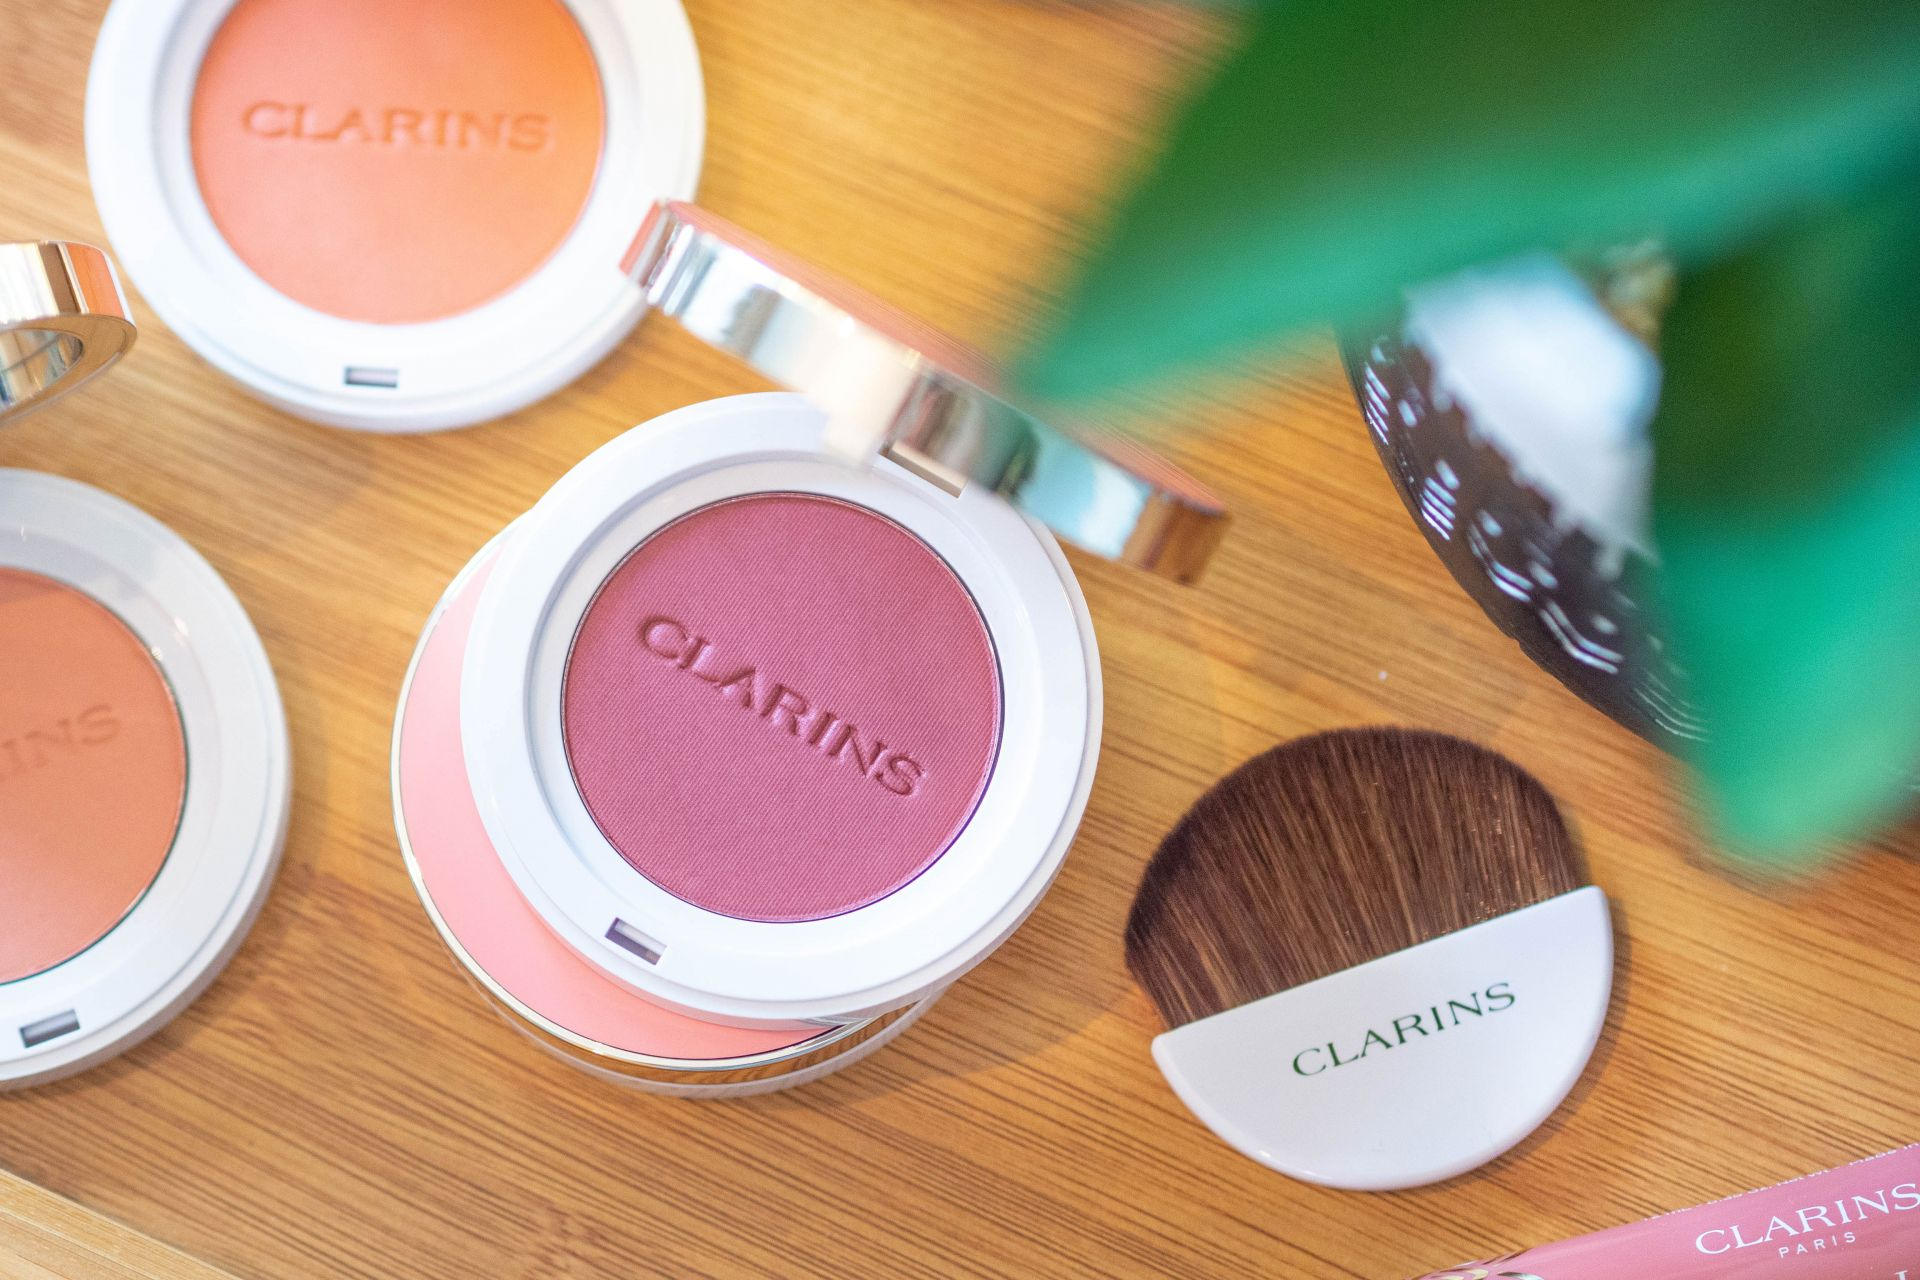 Clarins Autumn Collection 2019